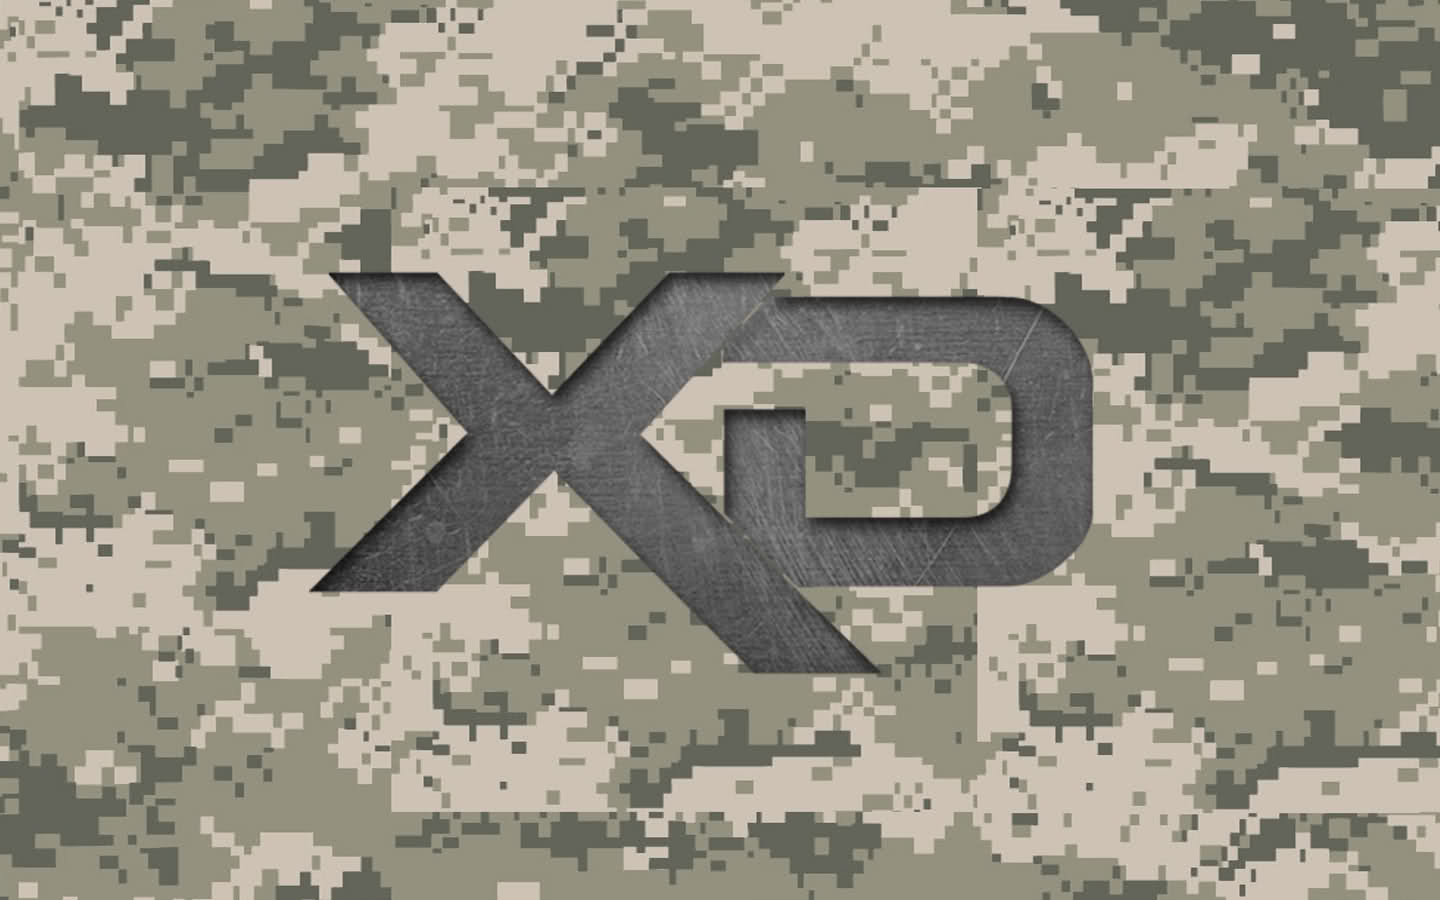 Made an XD Wallpaper COME GET IT 1440x900